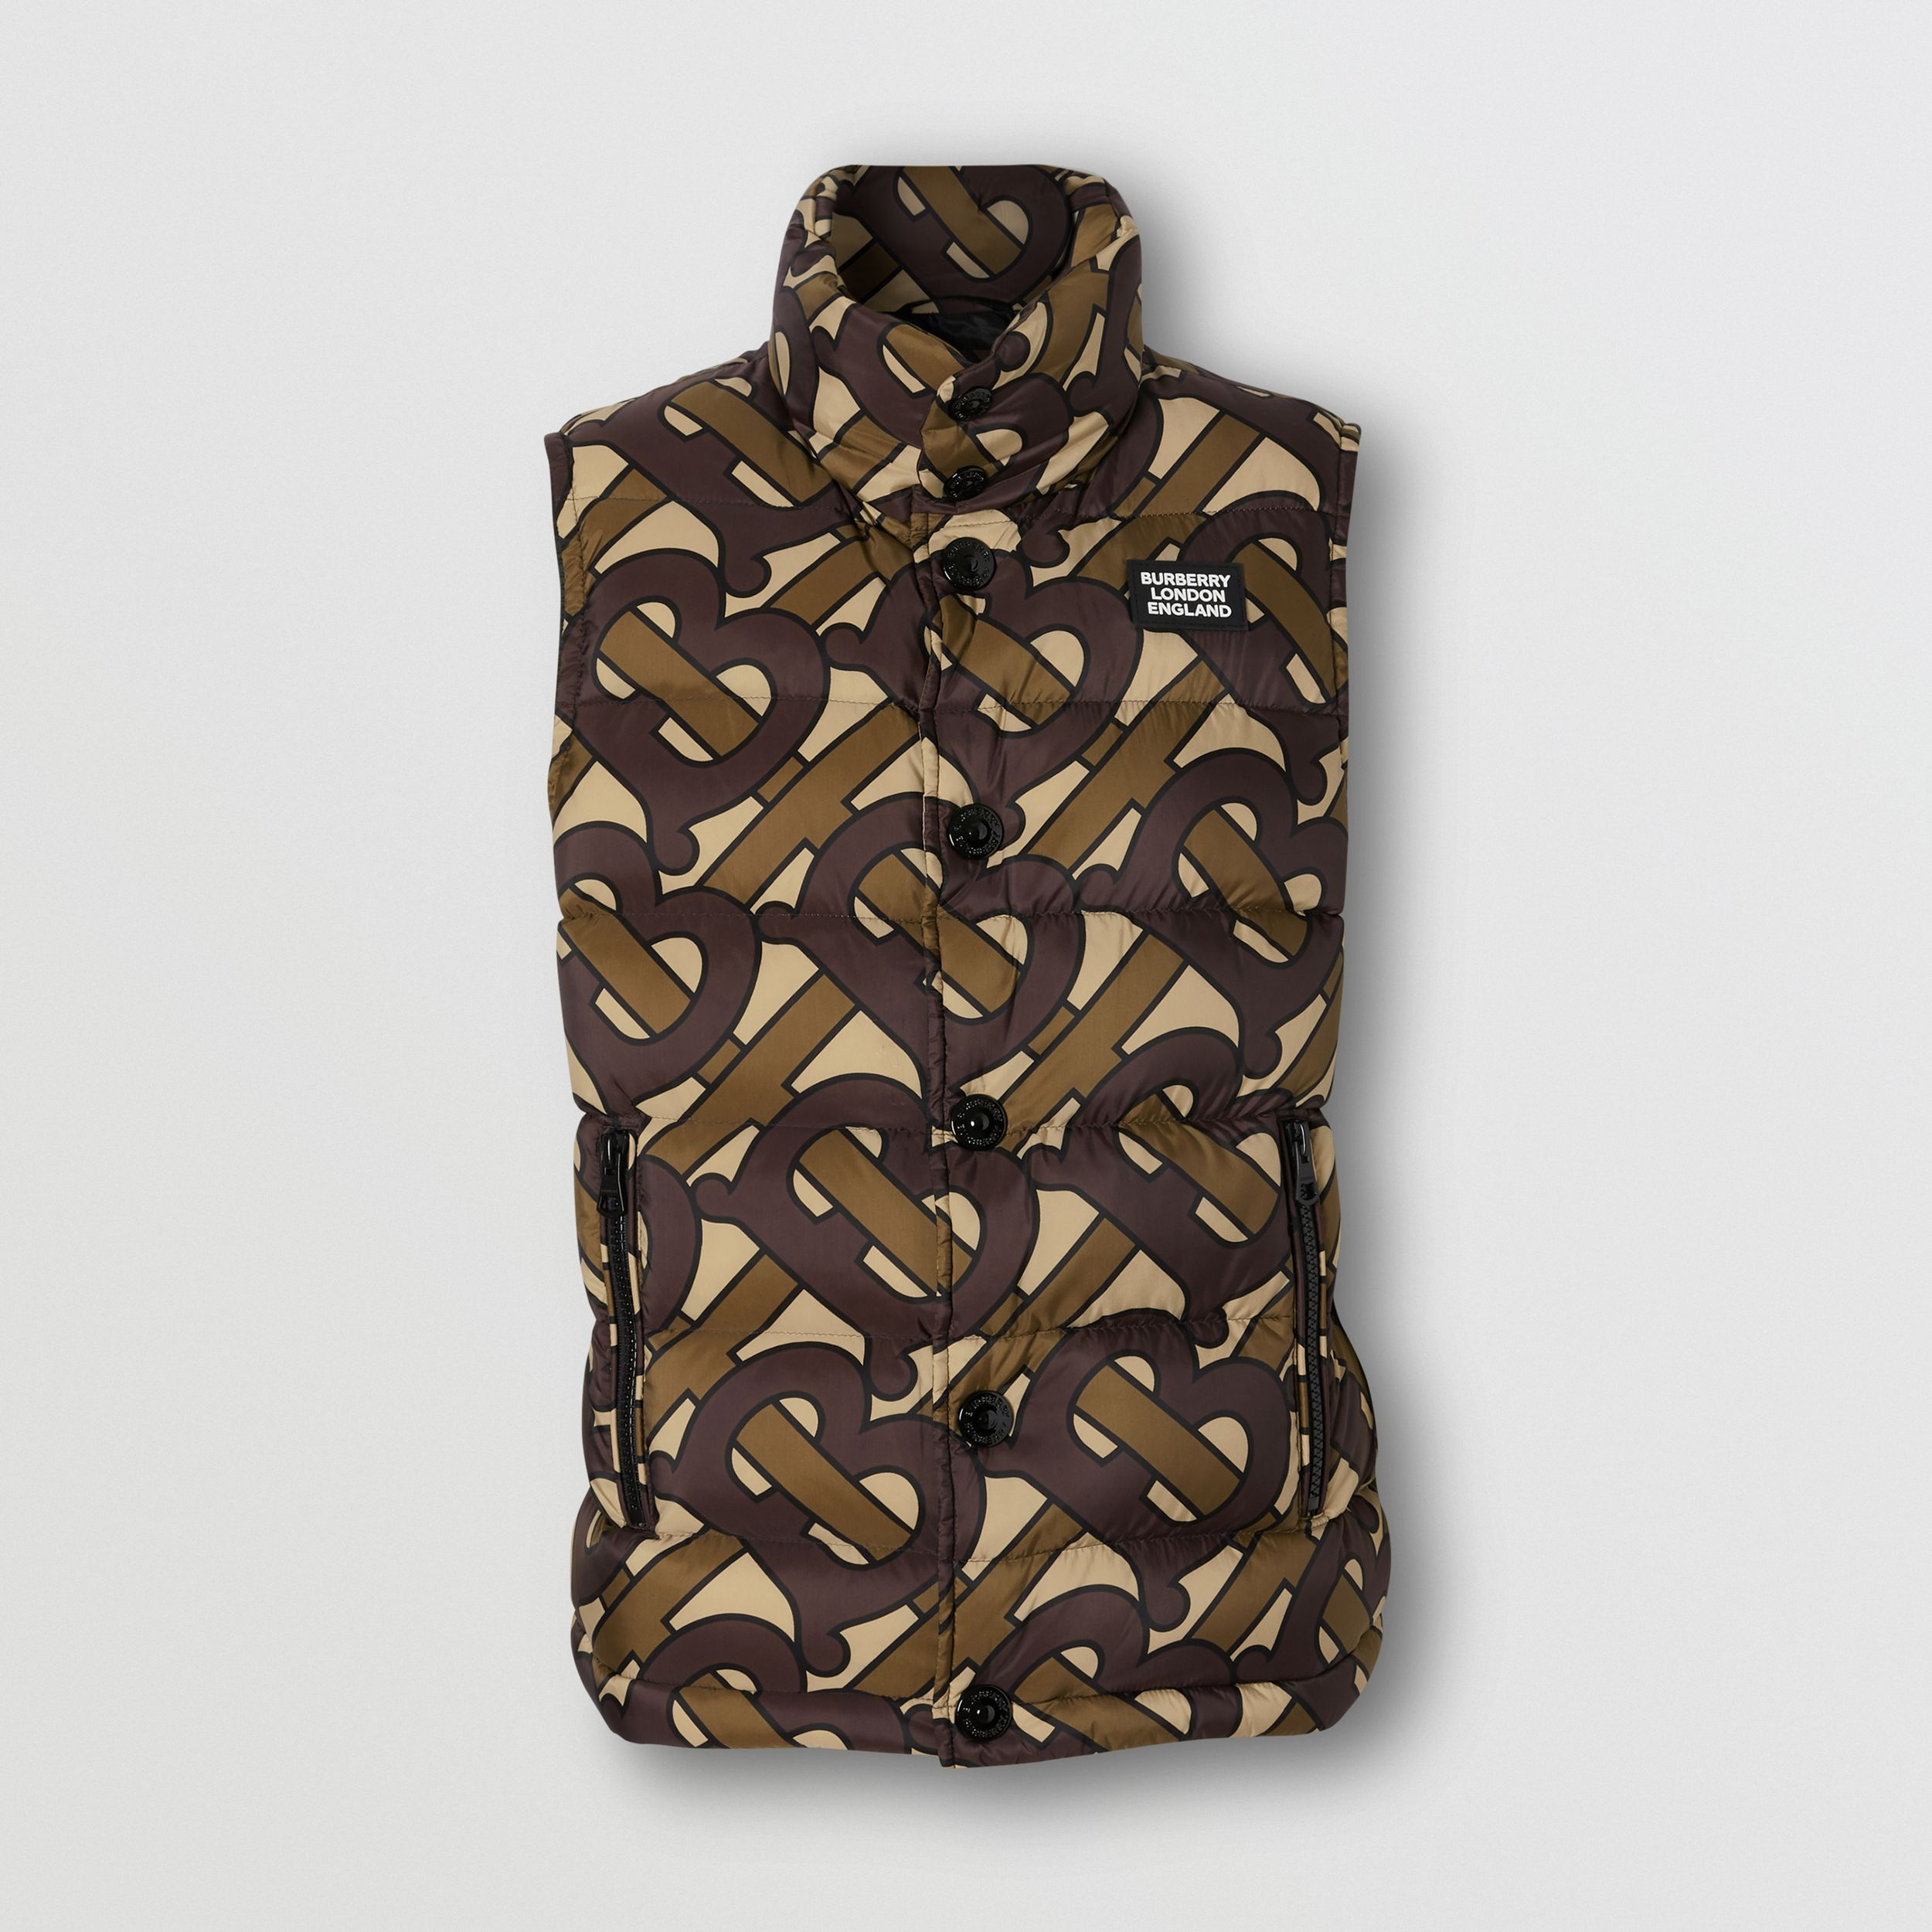 Monogram Print Puffer Gilet in Bridle Brown | Burberry Australia - 1